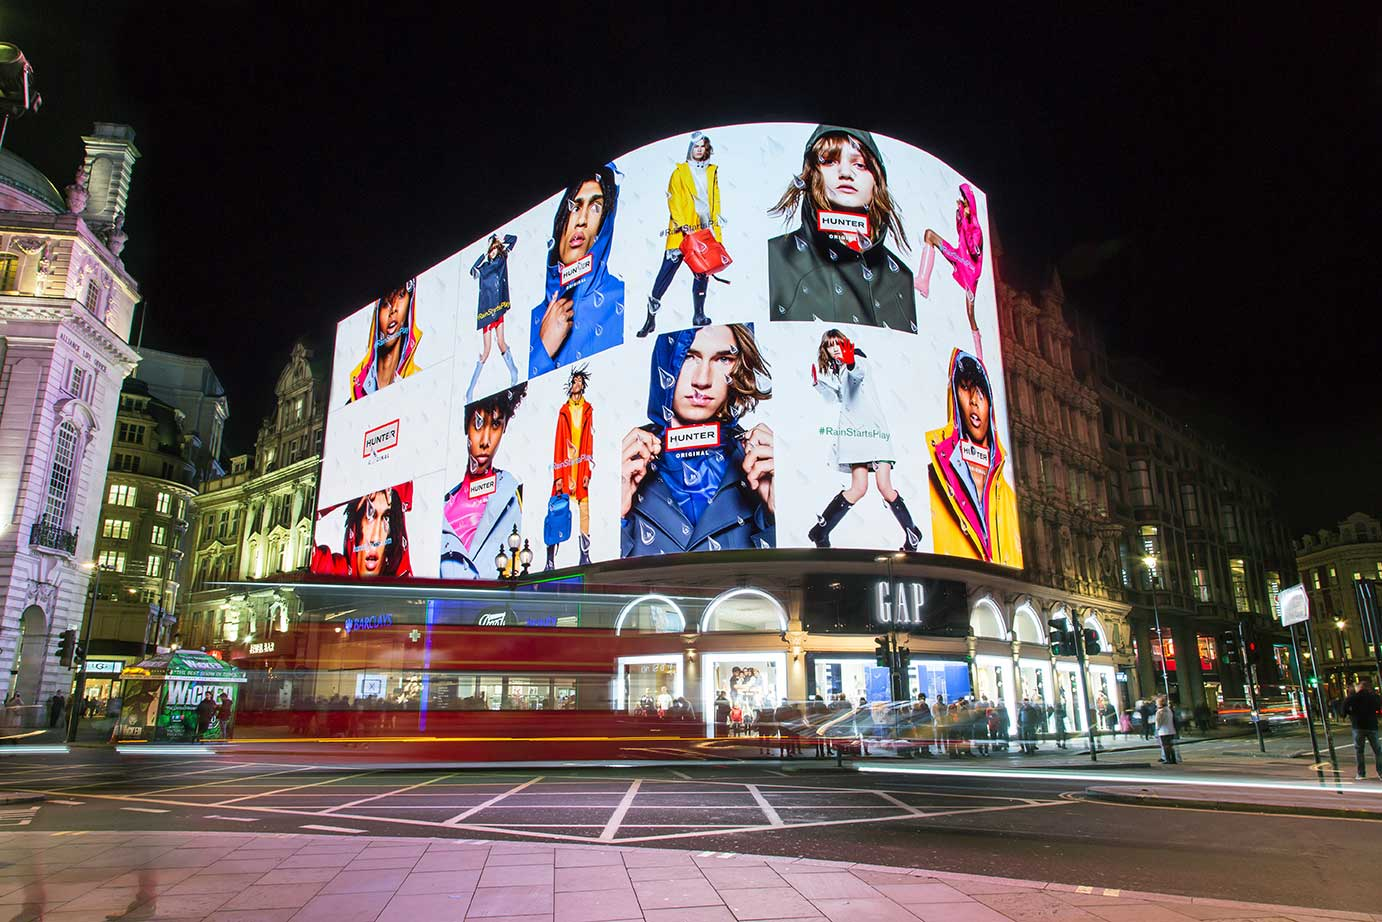 The Hunter advert on London's Piccadilly Circus Lights